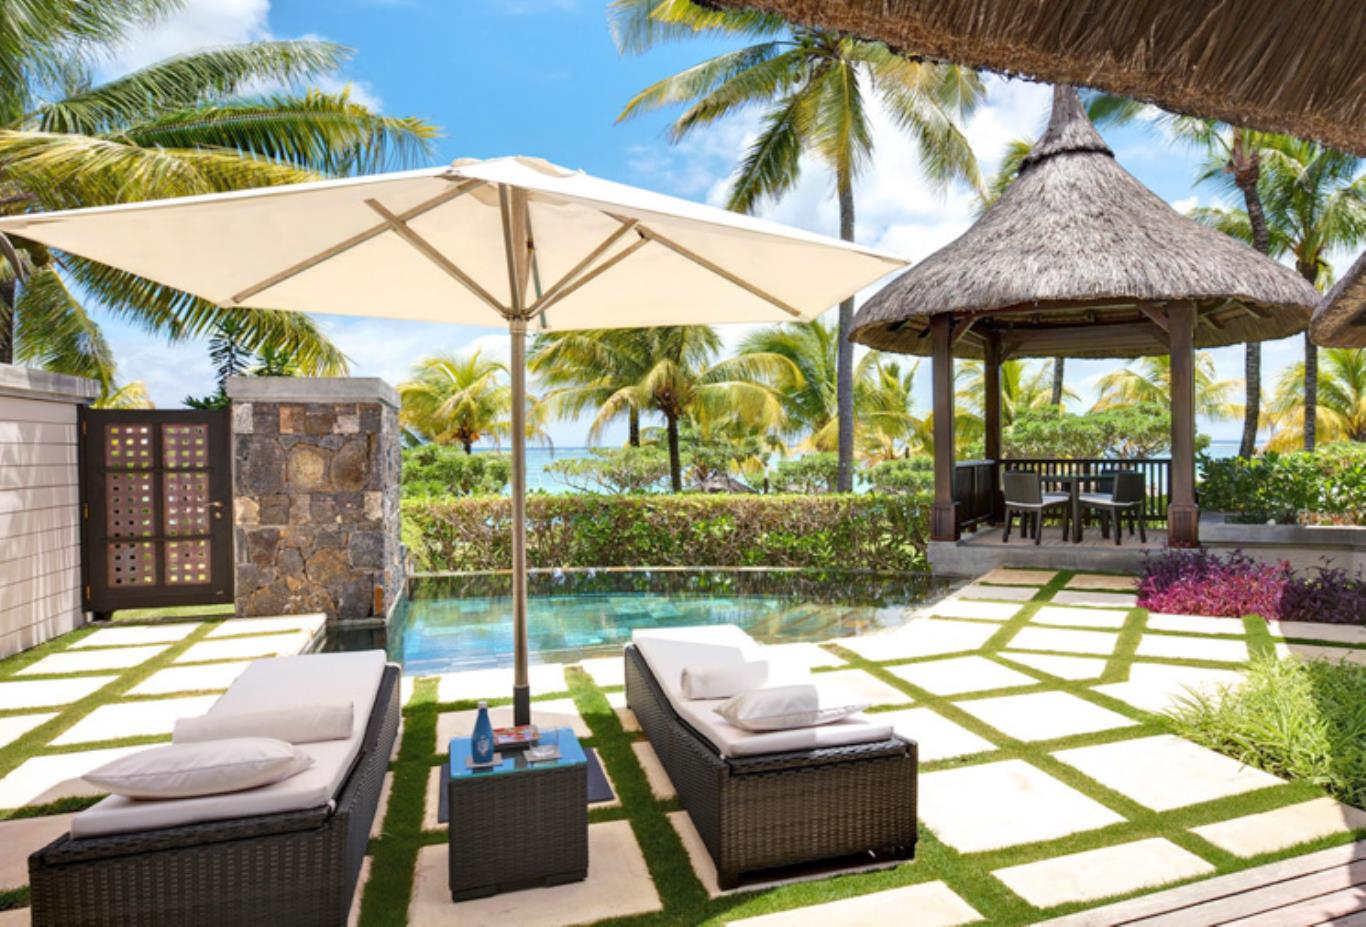 Beachfront Villa pool and garden